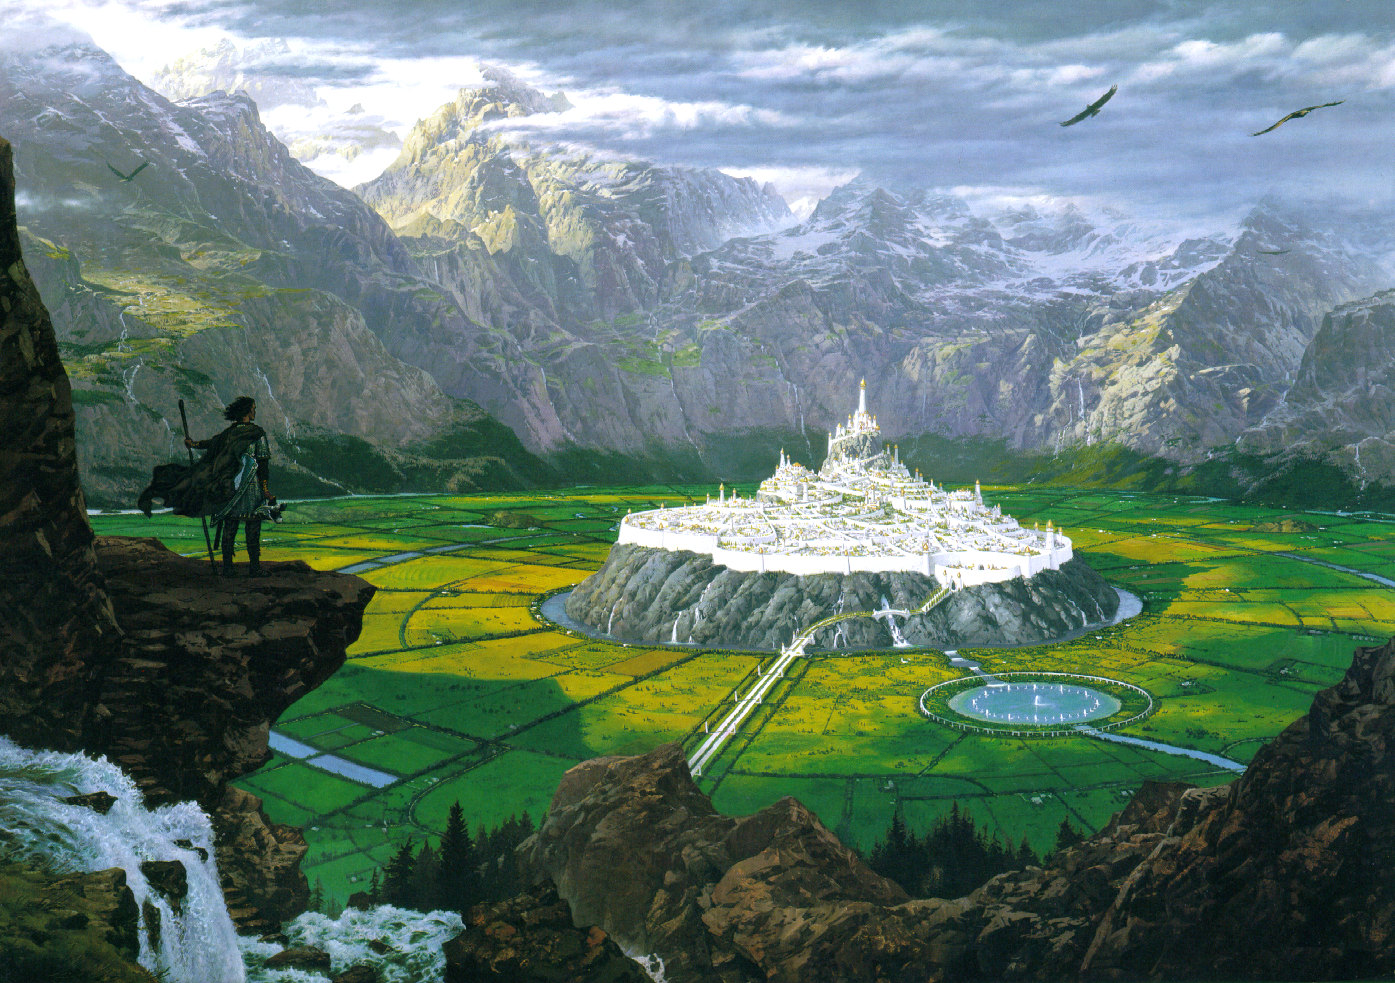 Tuor_Reaches_the_Hidden_City_of_Gondolin